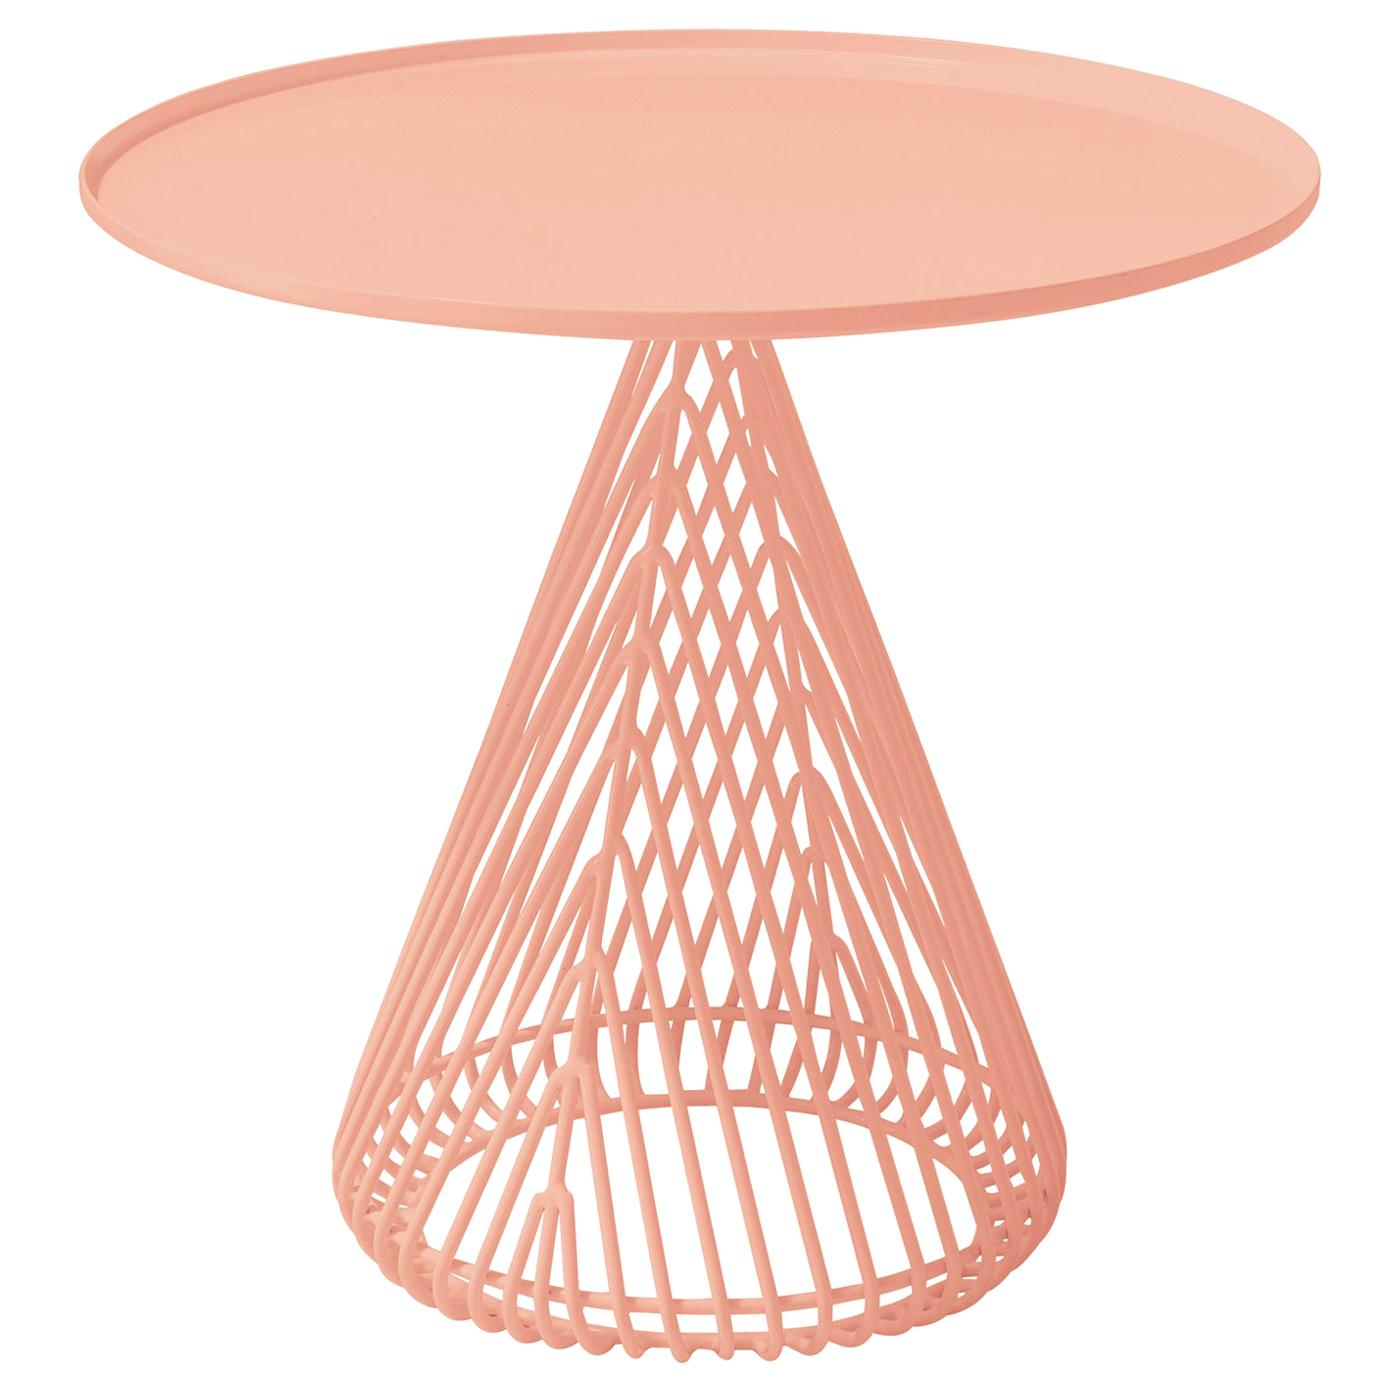 """Contemporary """"Cono"""" Side Table in Peachy Pink by Bend Goods"""